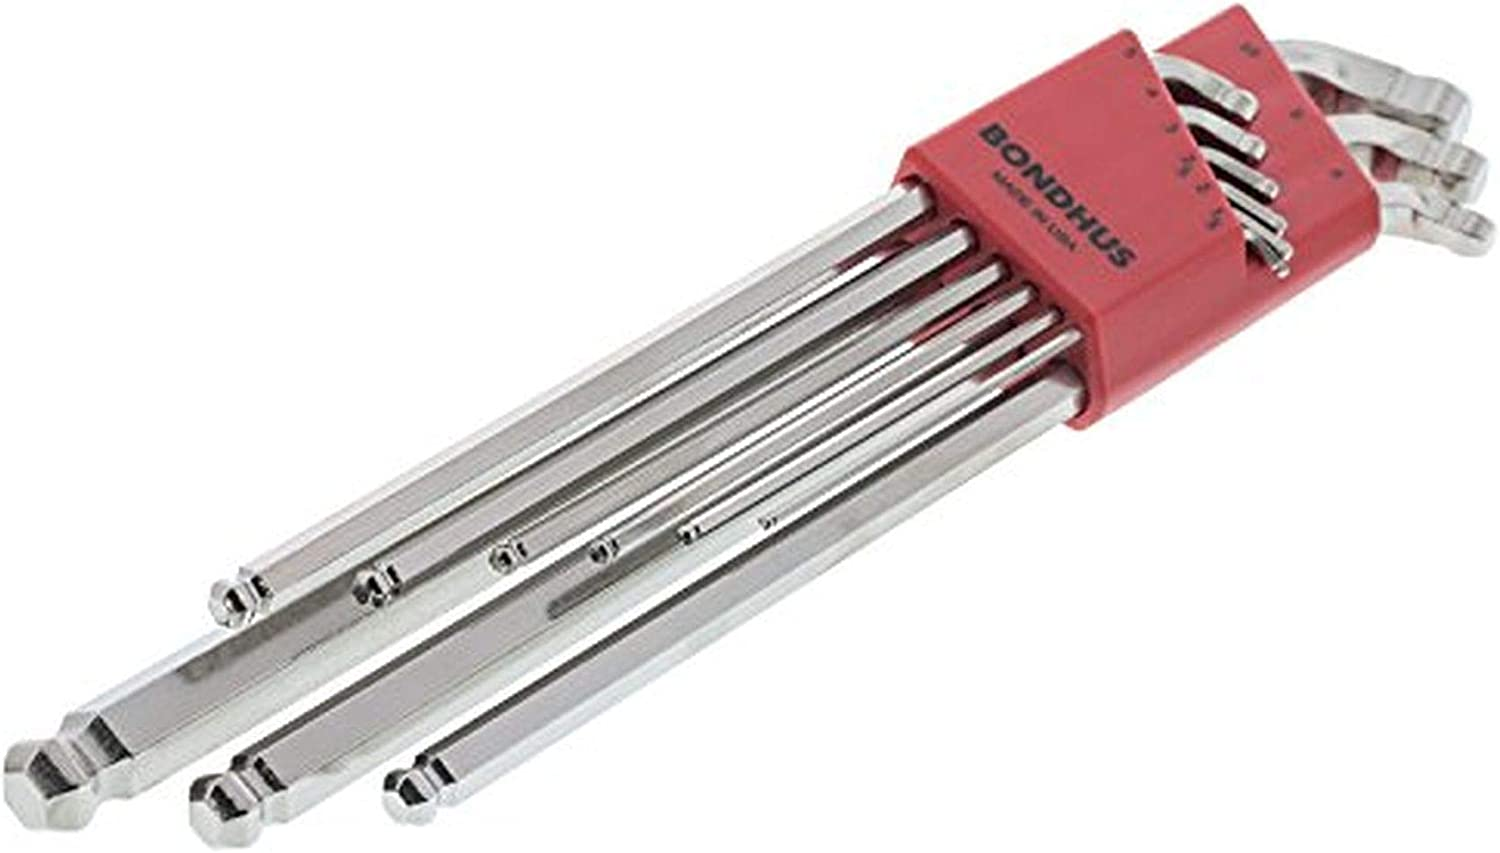 Bondhus 77099 Stubby Double Ball End L-Wrench Set with BriteGuard Finish and Extra Long Arm 9 Piece